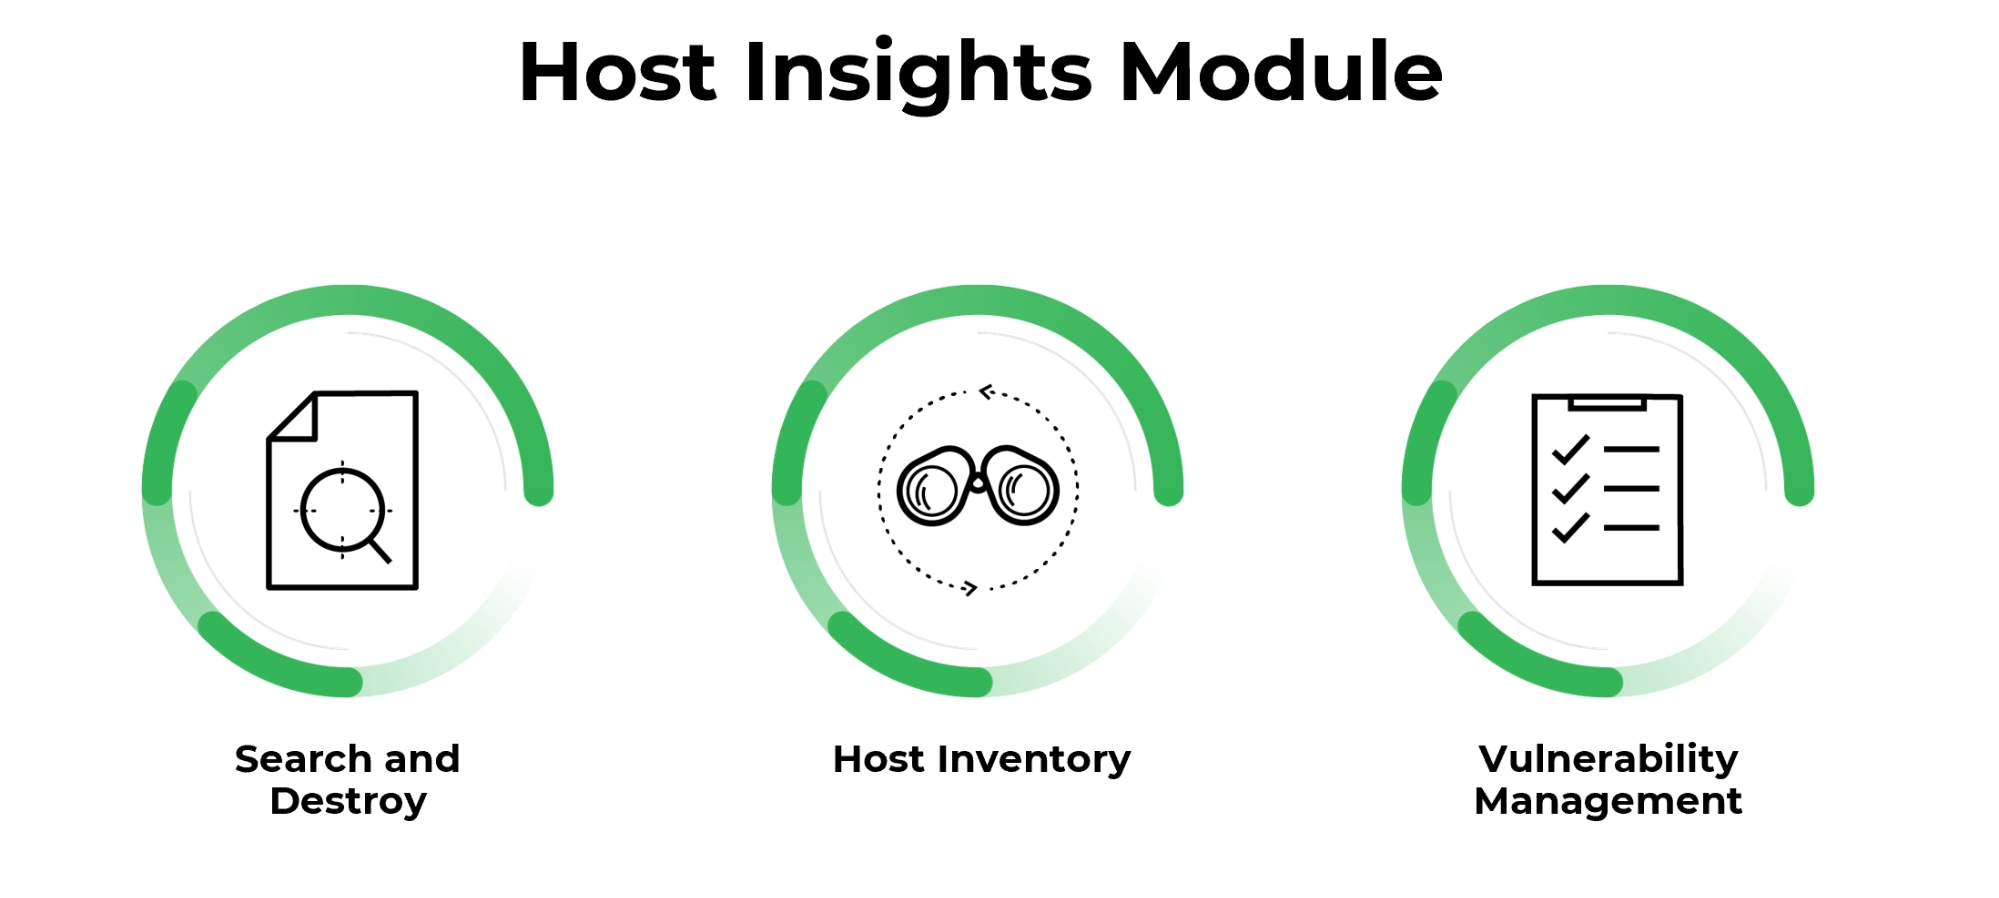 The Host Insights Module in Cortex XDR 2.5 includes features such as Search and Destroy, Host Inventory and Vulnerability Management.